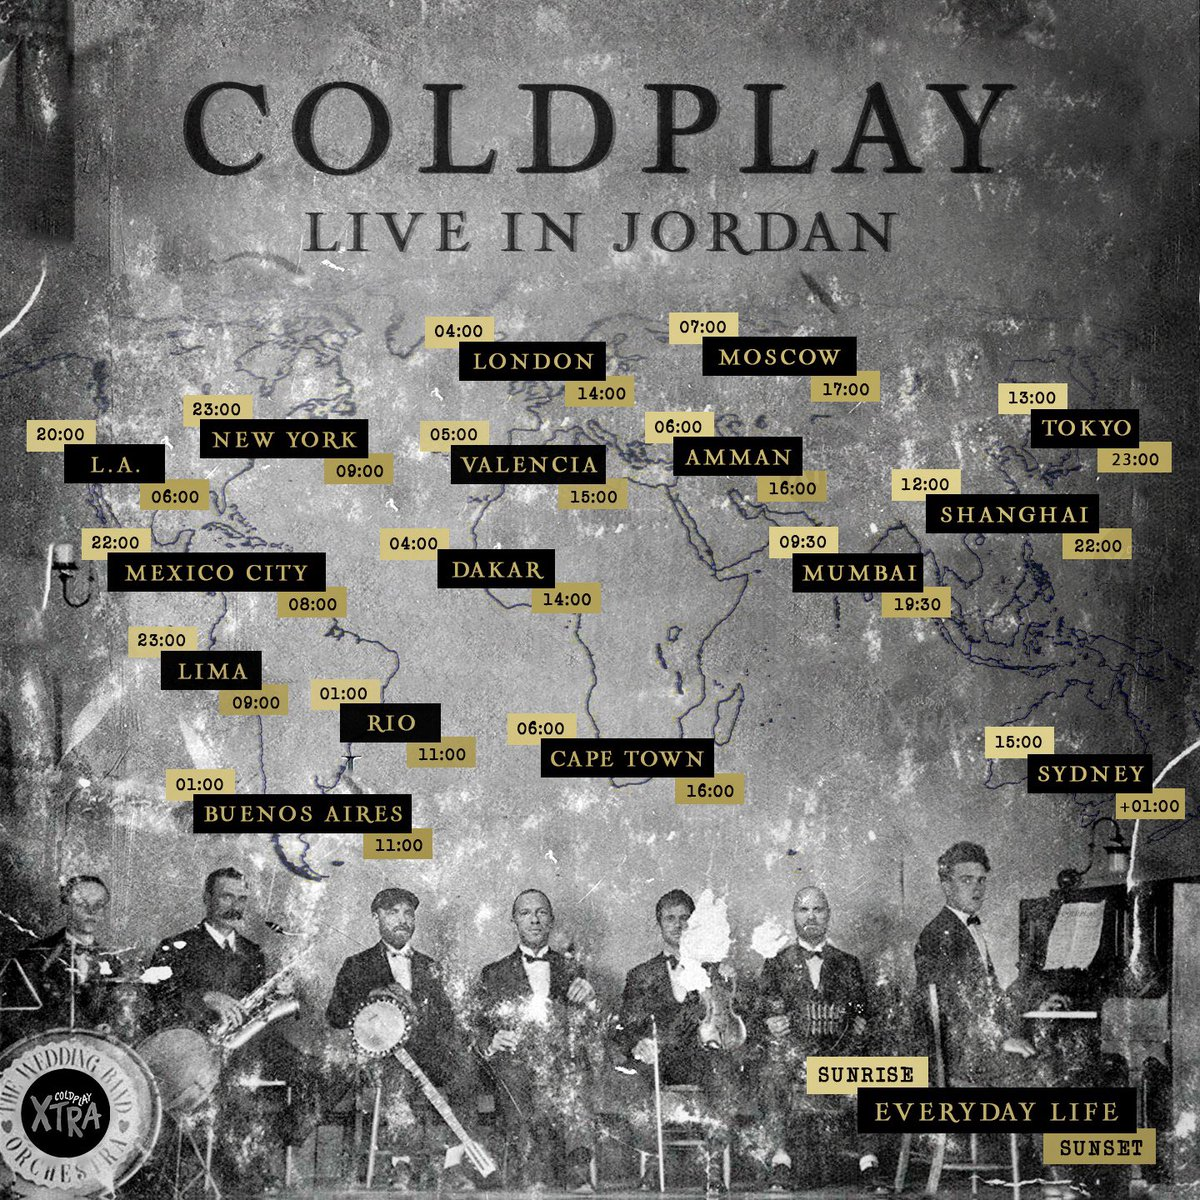 Tomorrow is the big day 🙌Coldplay's new album #EverydayLife performed live at Sunrise & Sunset from Jordan - Live on @YouTube 🌙☀️#ColdplayJordan